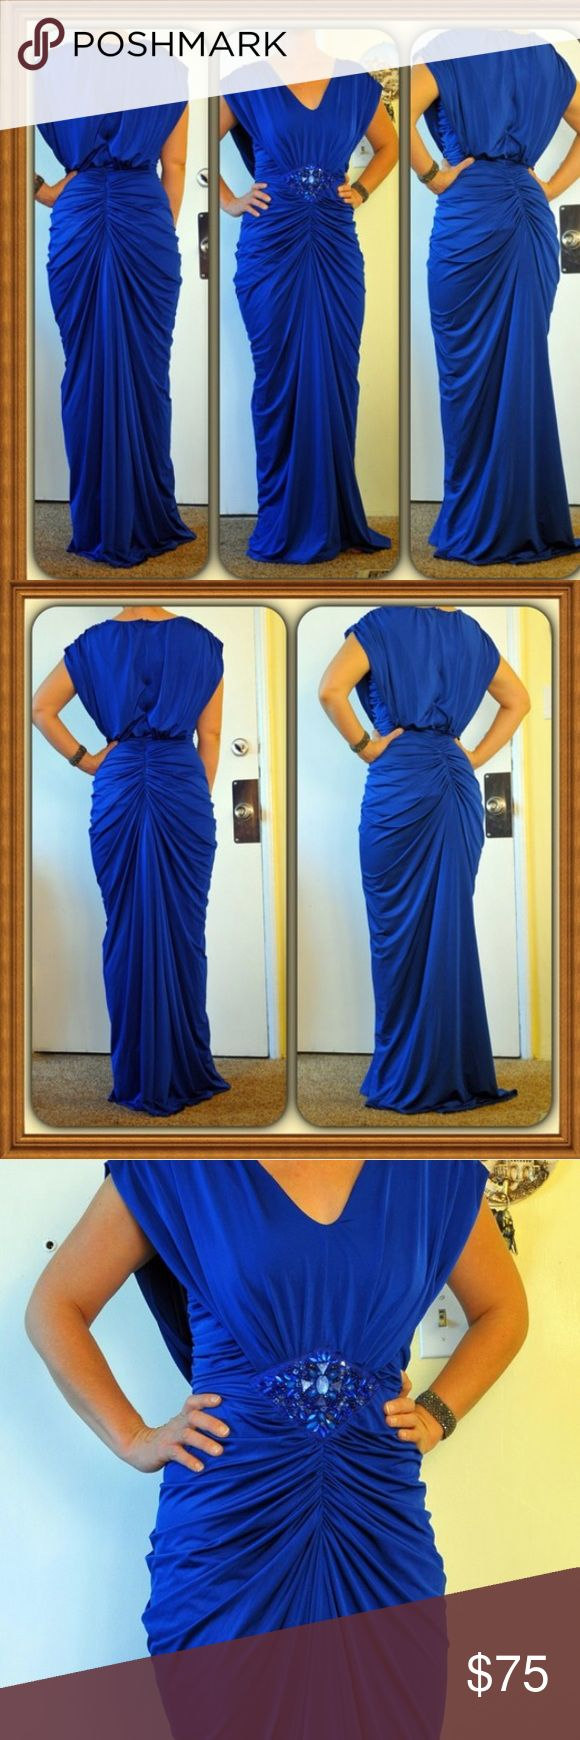 Va va voom dress, like new!! Worn only a few hours for a Marine ball. Stretchy soft material to show off your curves! #formal #prom #gown #ball Vava voom Dresses Prom